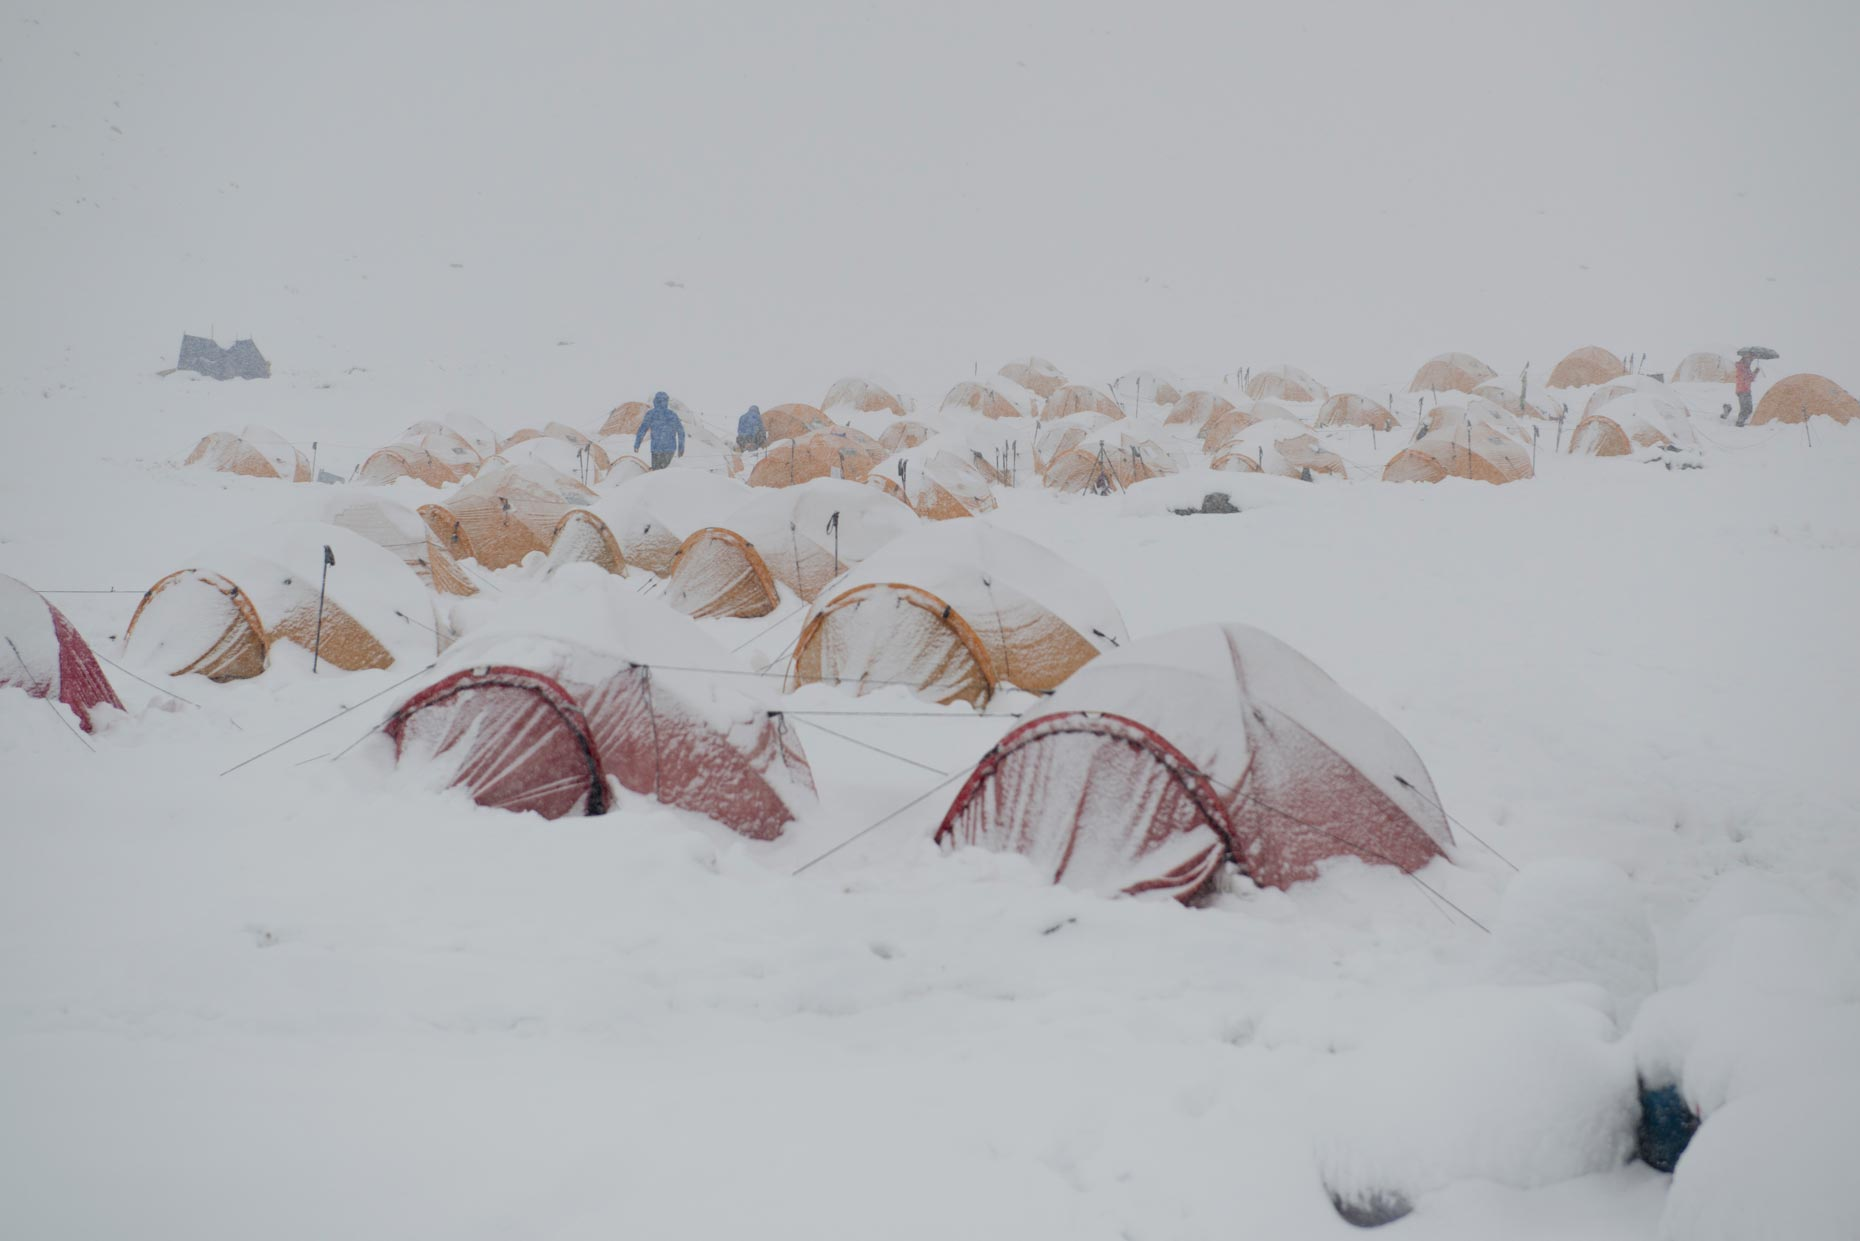 Base Camp on Himlung Himal | The Himalayan Experiment for GEO magazine | Nepal | Stefen Chow